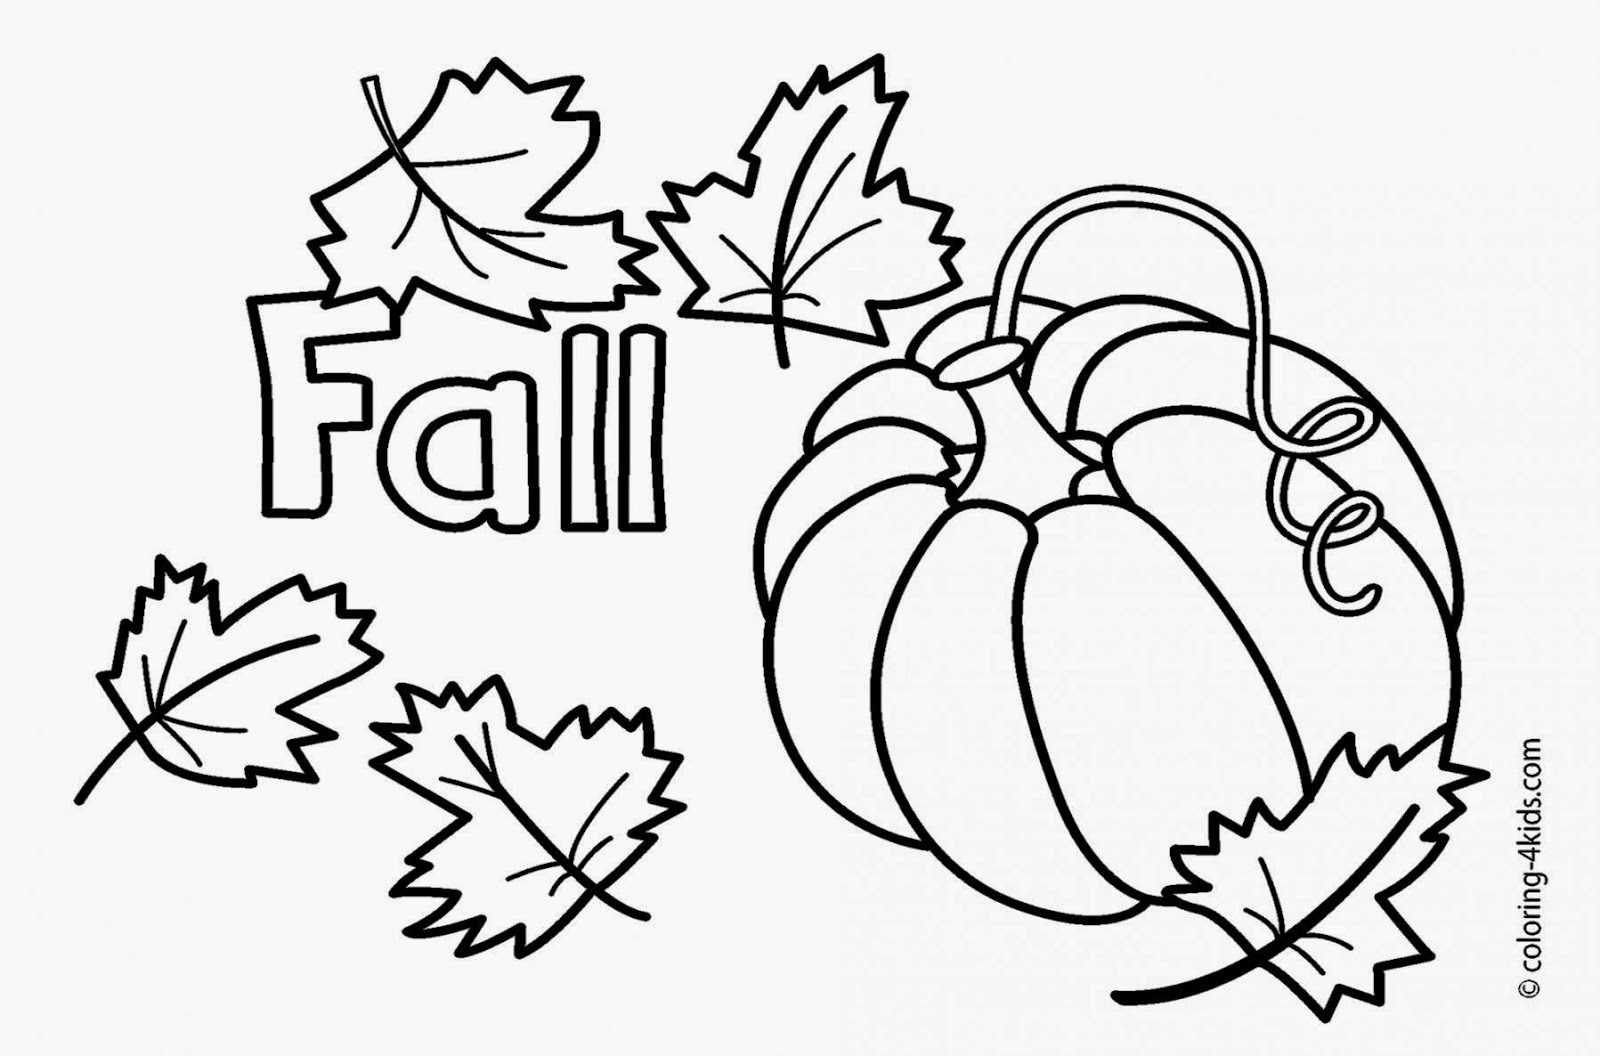 fall coloring pages - fall coloring pages pumpkin sketch templates